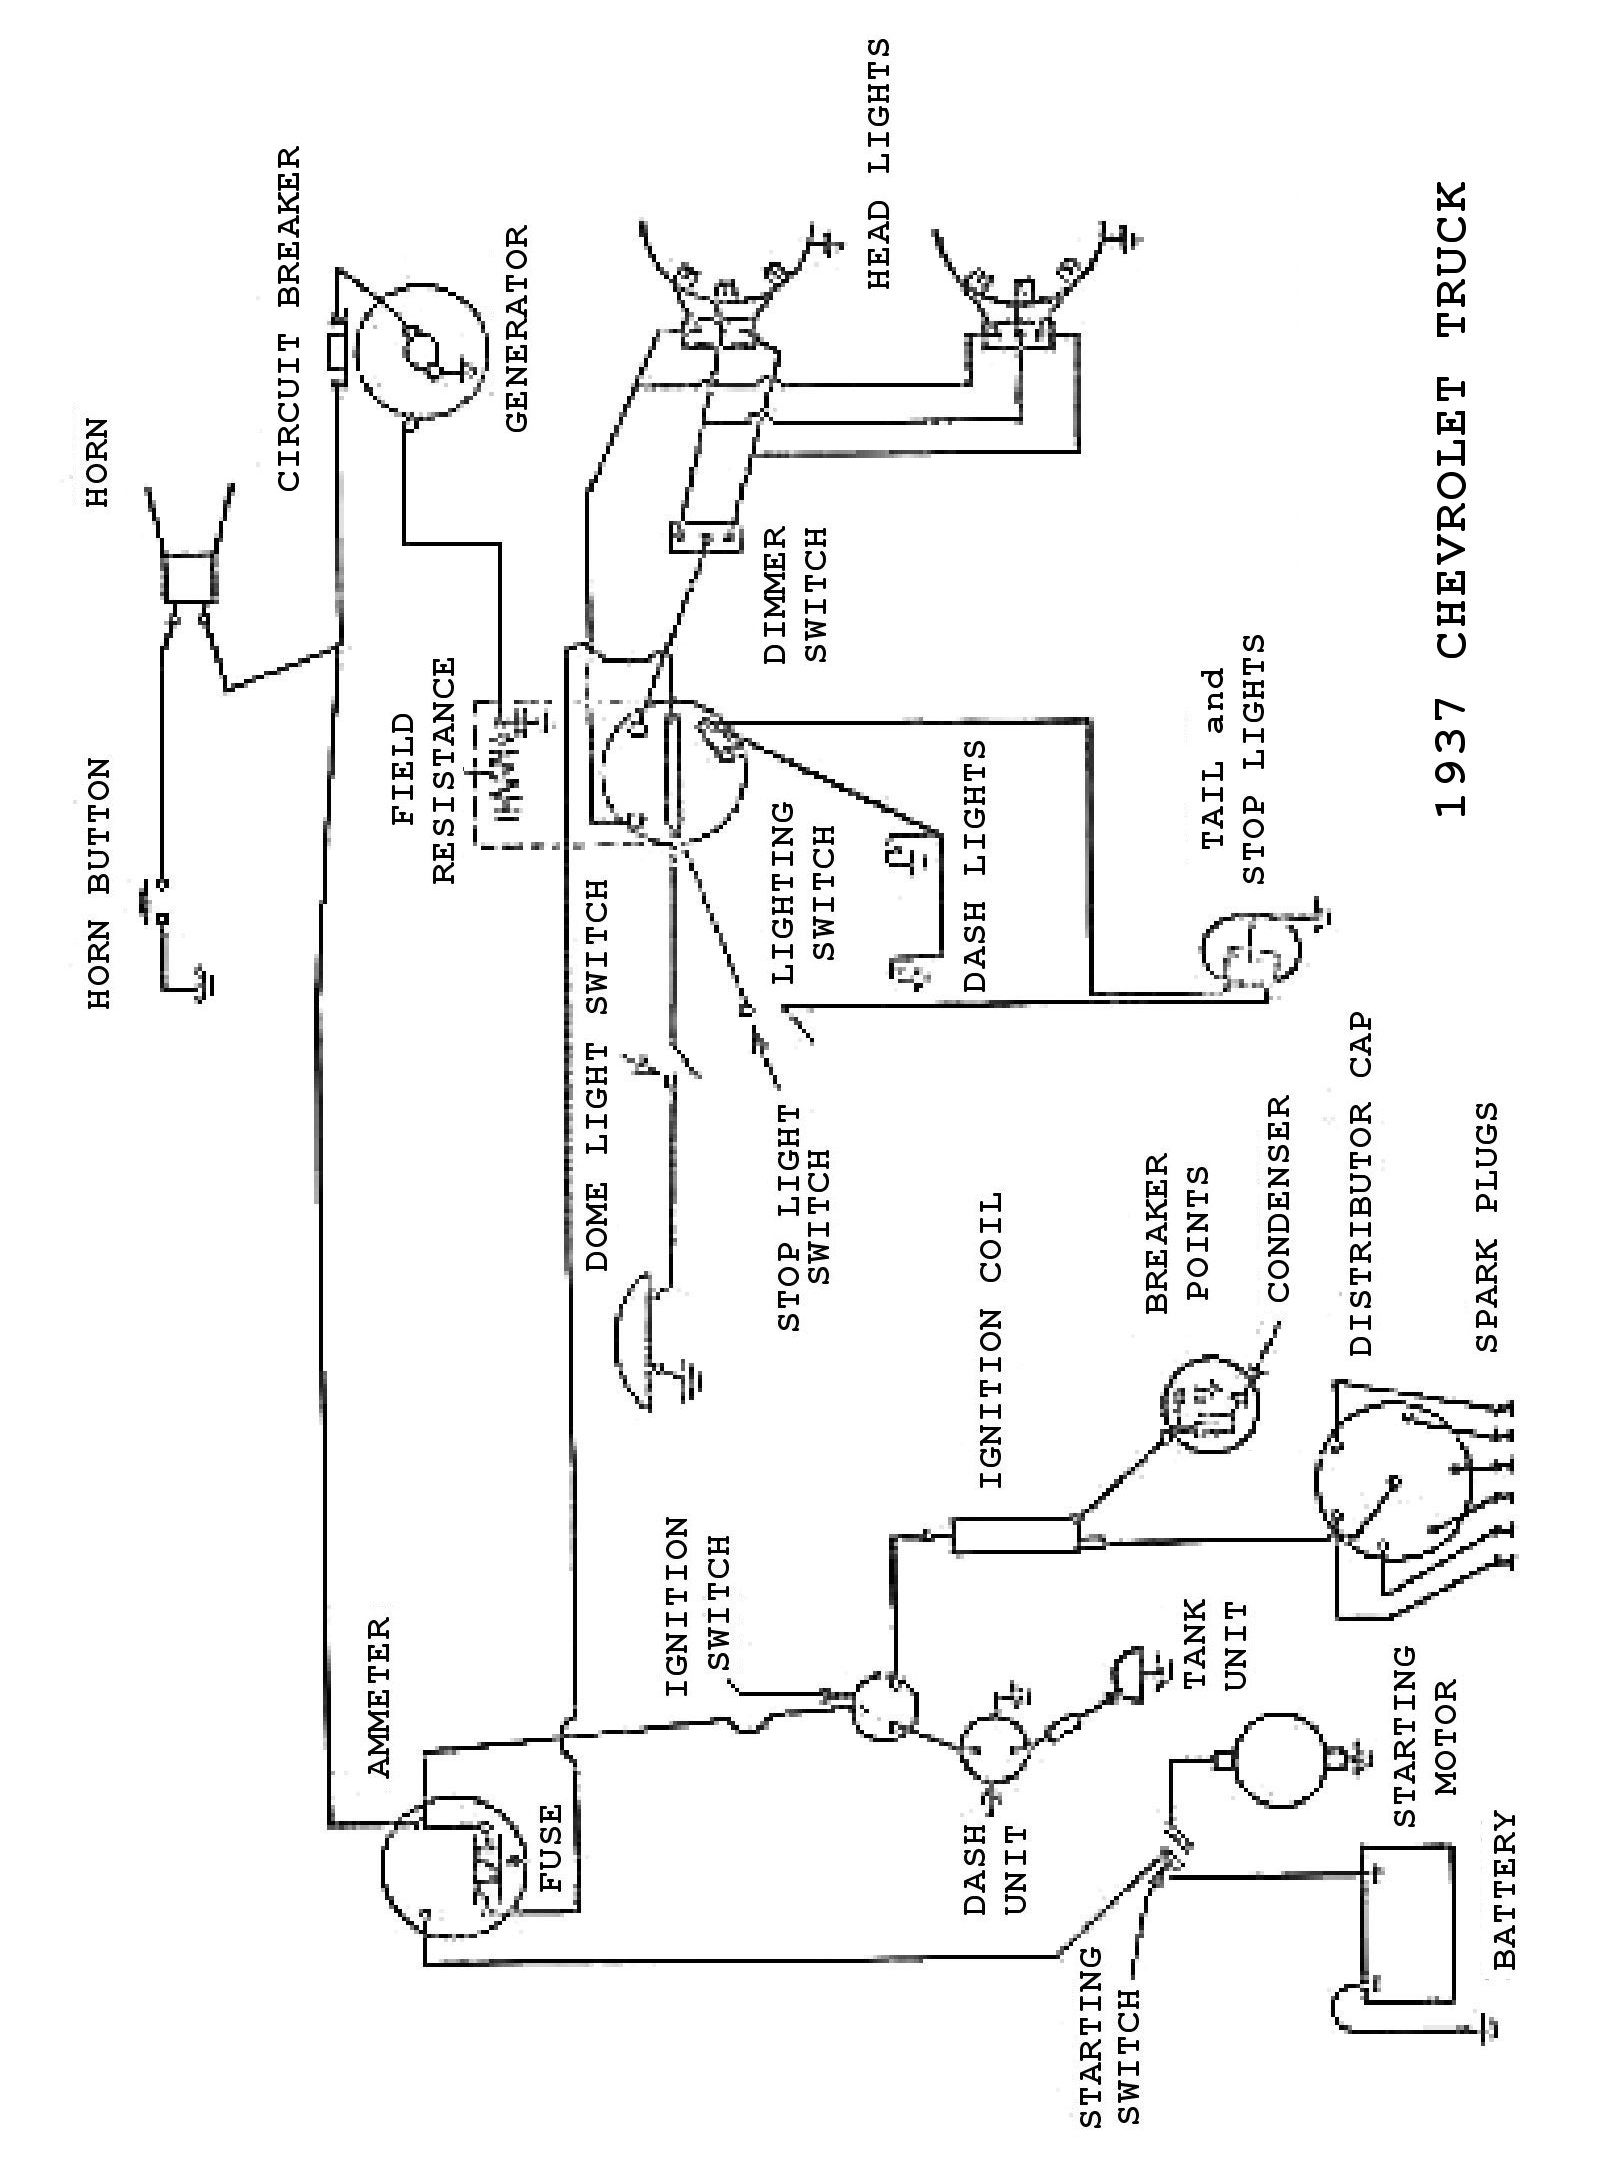 1939 plymouth brake diagram data wiring diagrams u2022 rh mikeadkinsguitar com